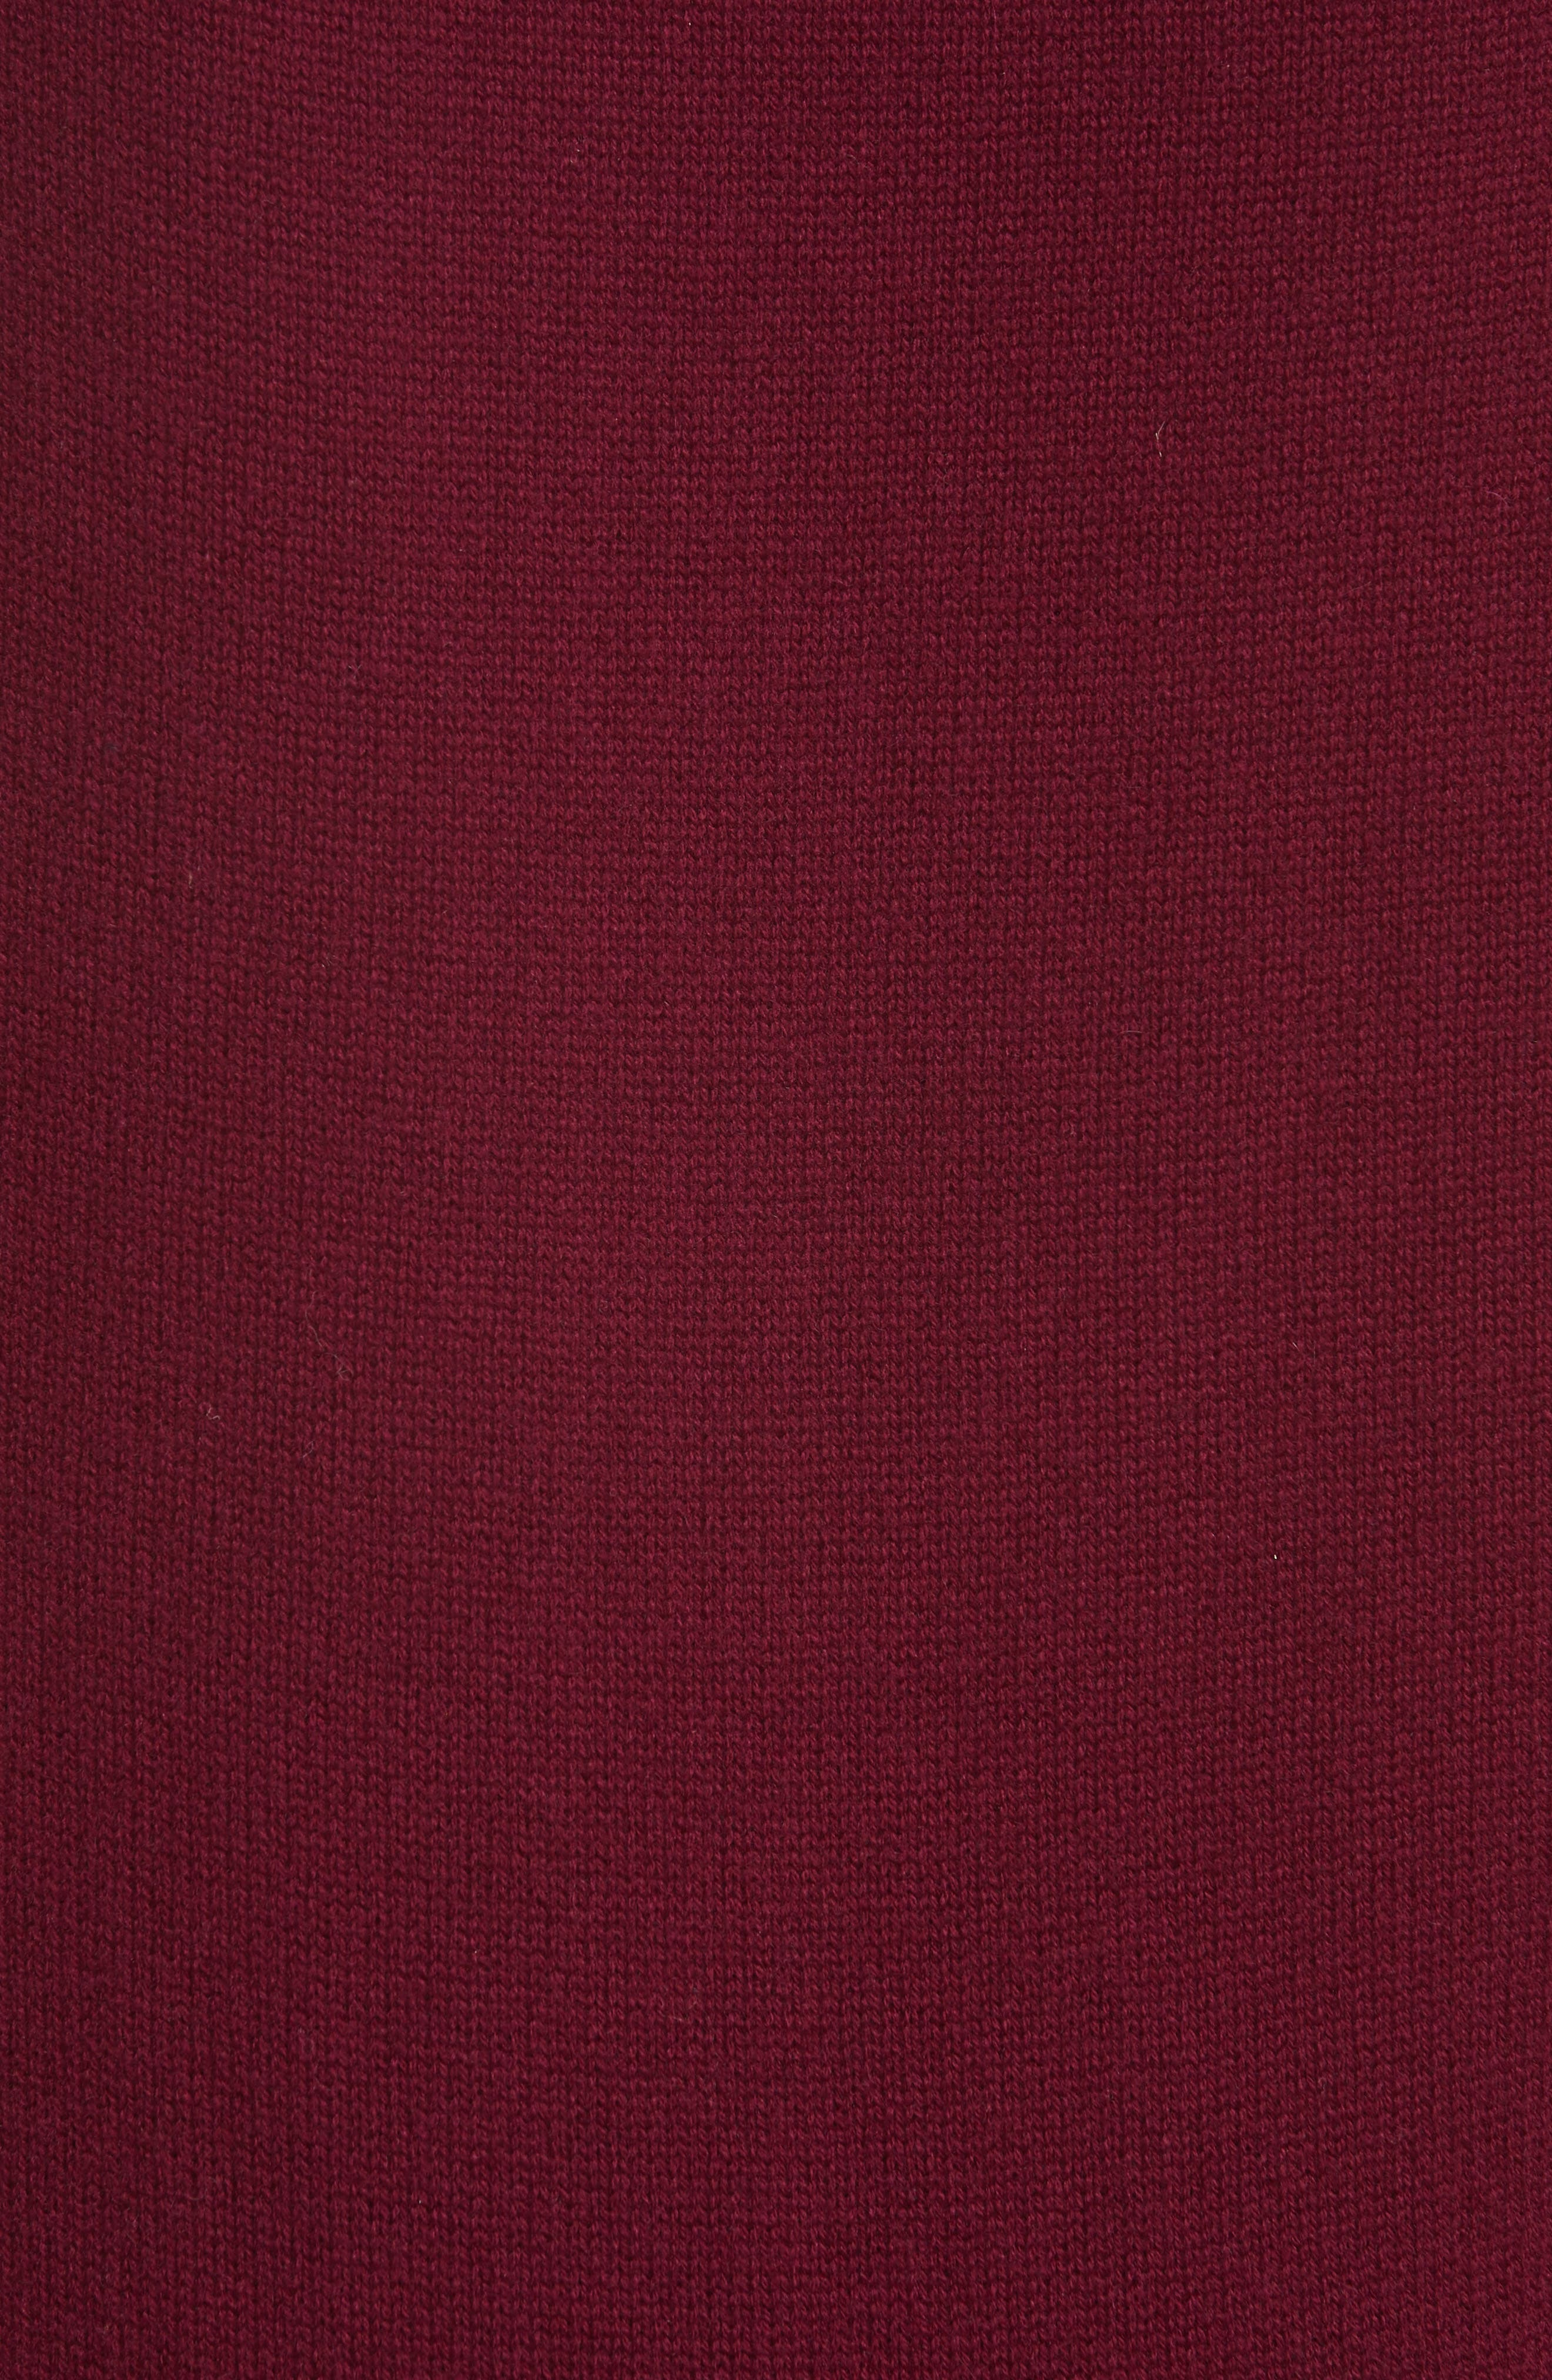 High/Low Wool & Cashmere Sweater,                             Alternate thumbnail 5, color,                             MAROON